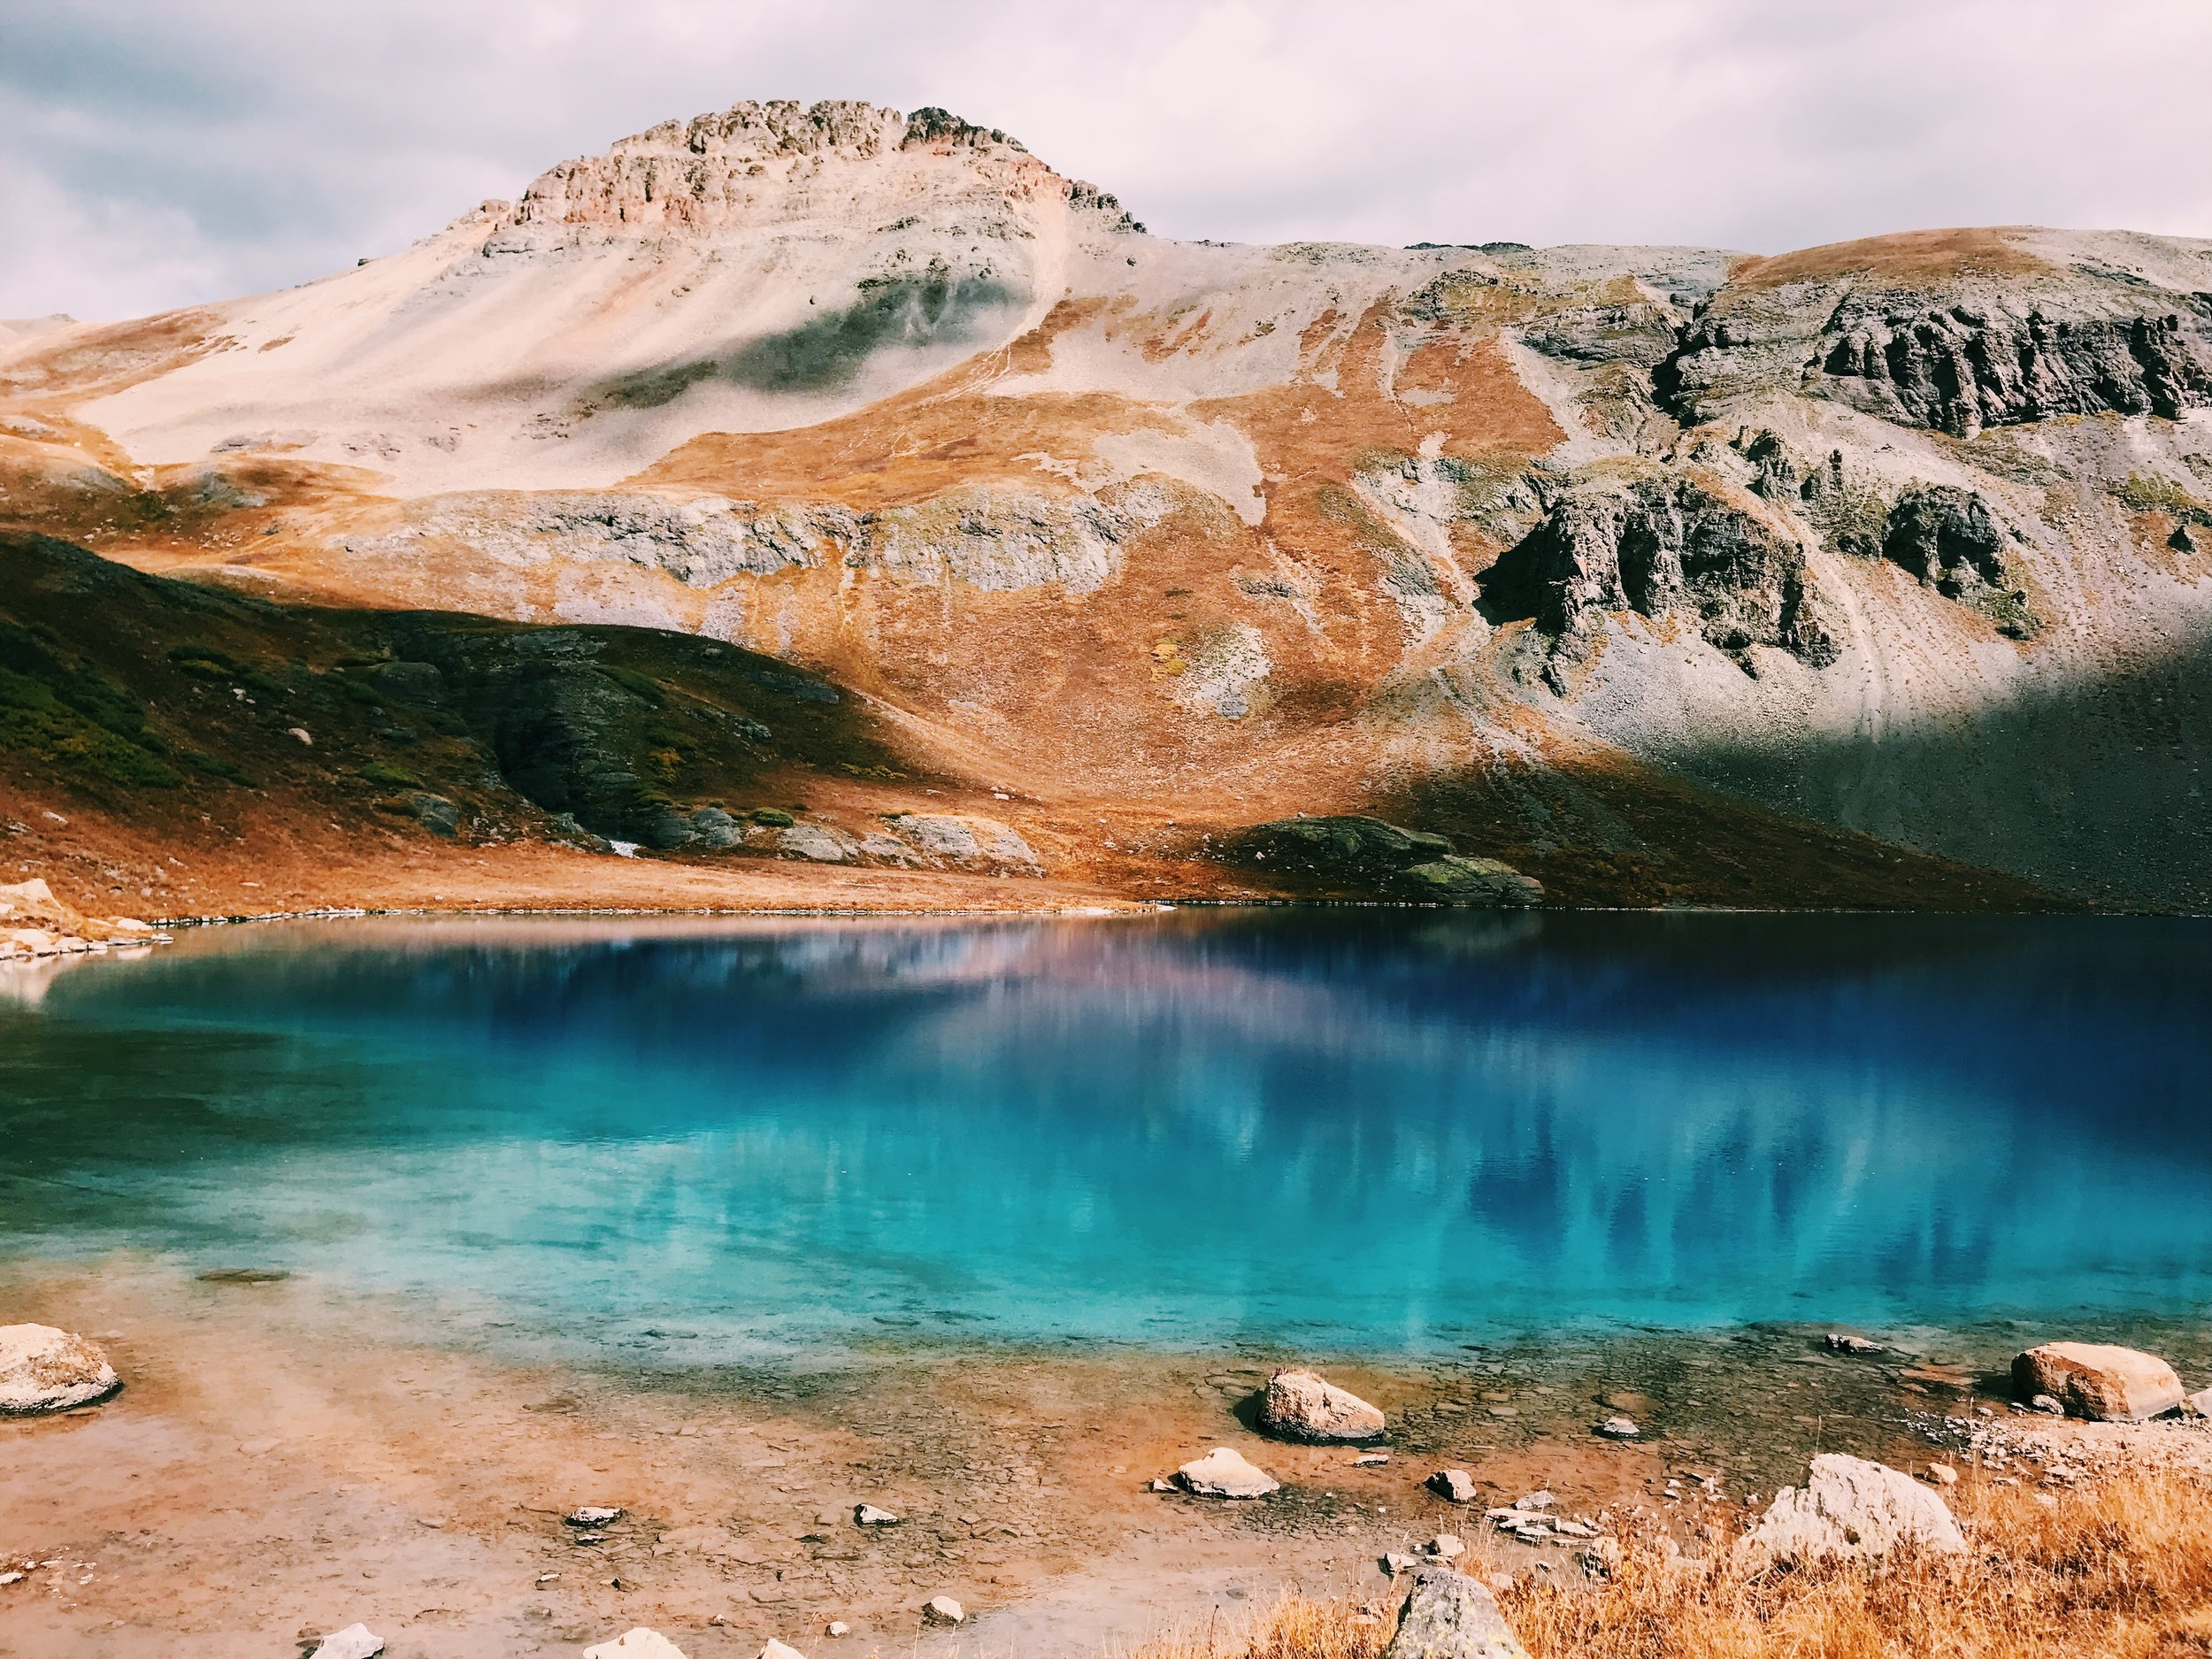 Silverton, Colorado in the San Juan National Forest. Ice Lake's cerulean colors must be witnessed firsthand.